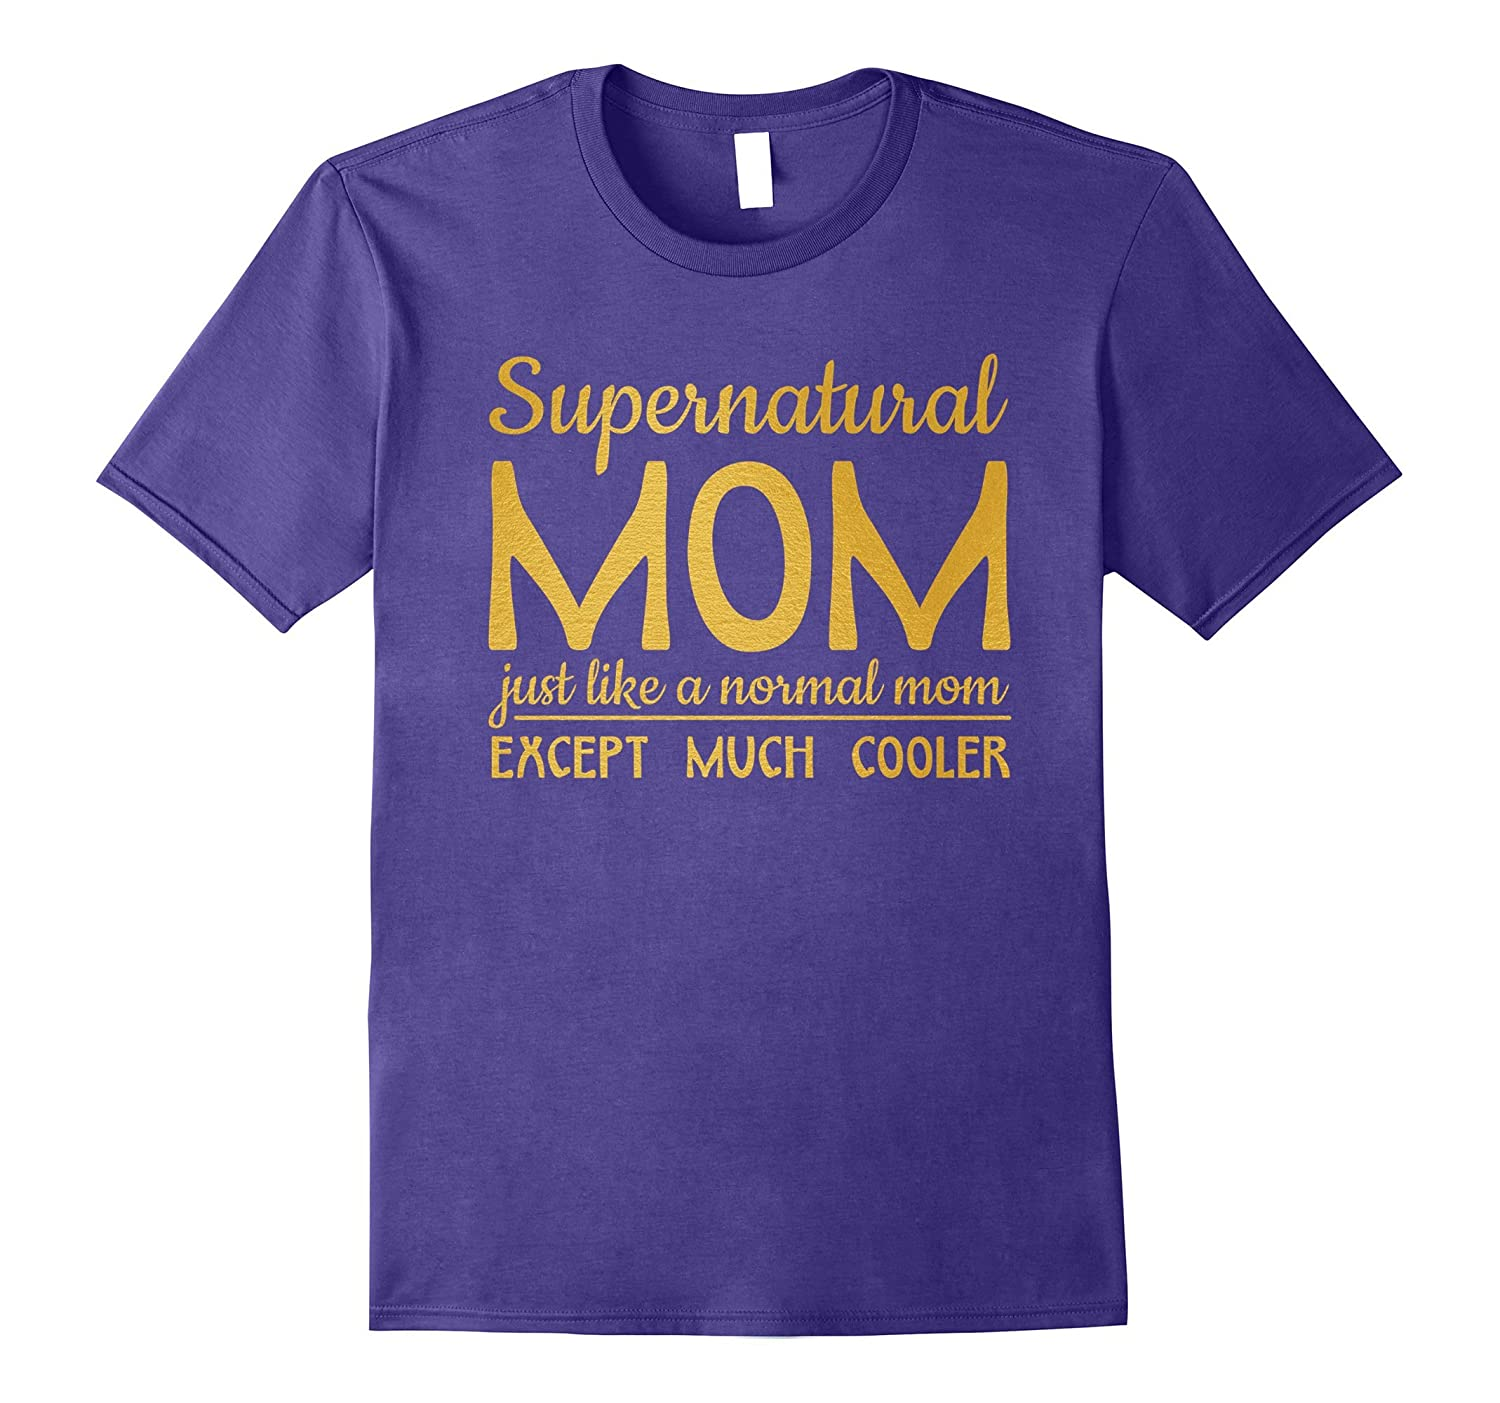 Supernatural Mom Just Like a Normal Mom T-Shirt-Vaci